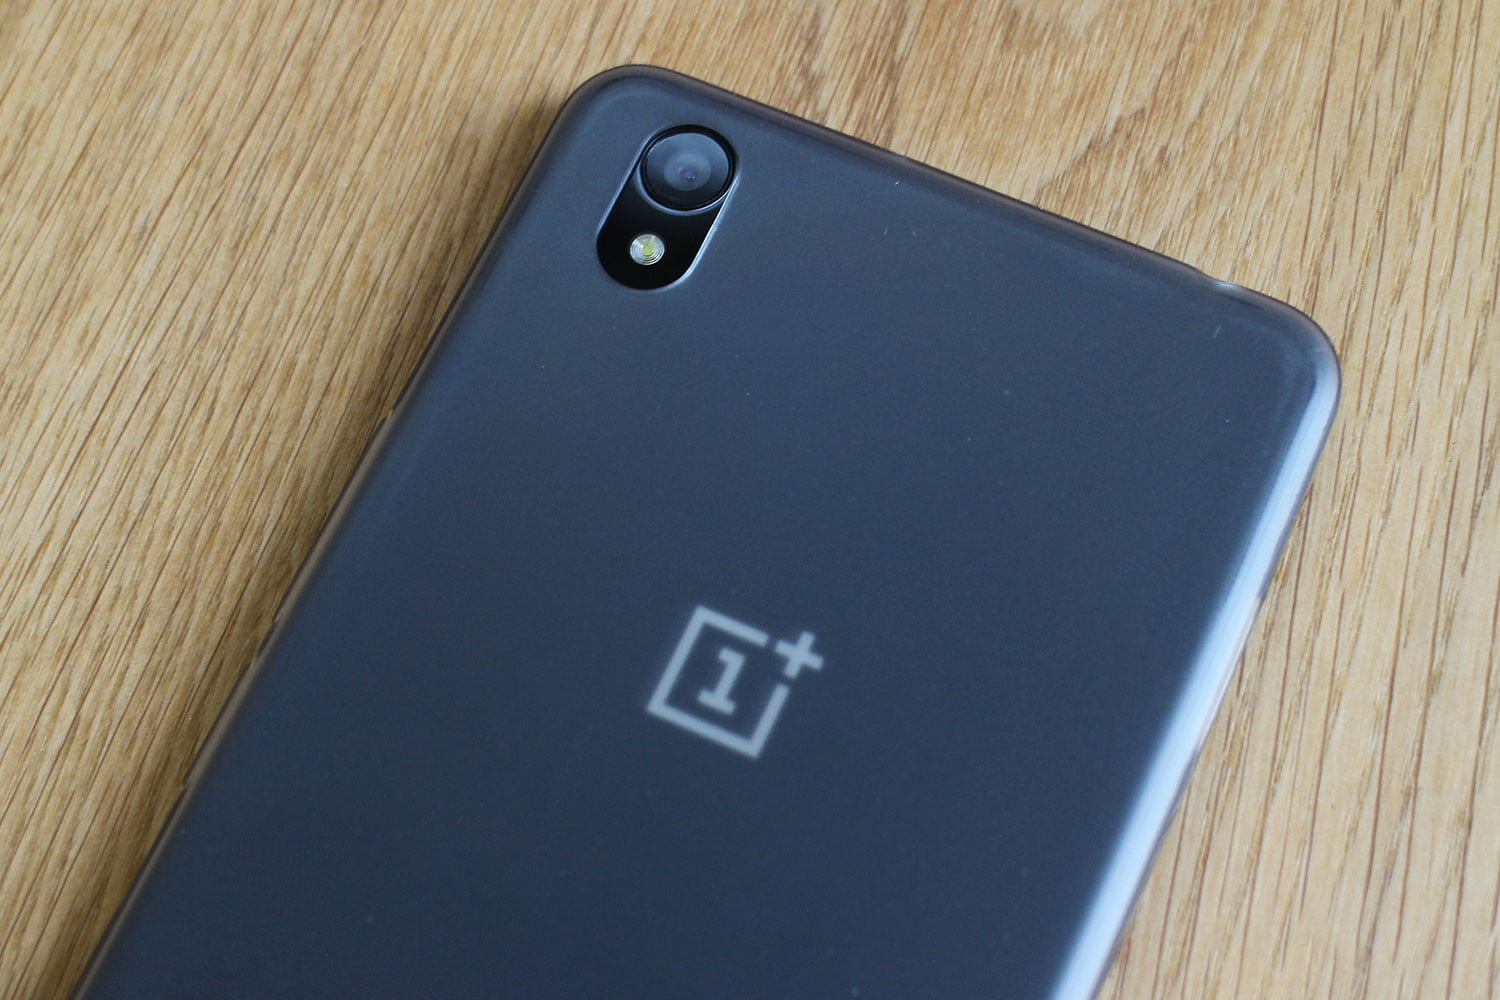 OnePlus Going  To Launch The World's First 5G Phone in 2019